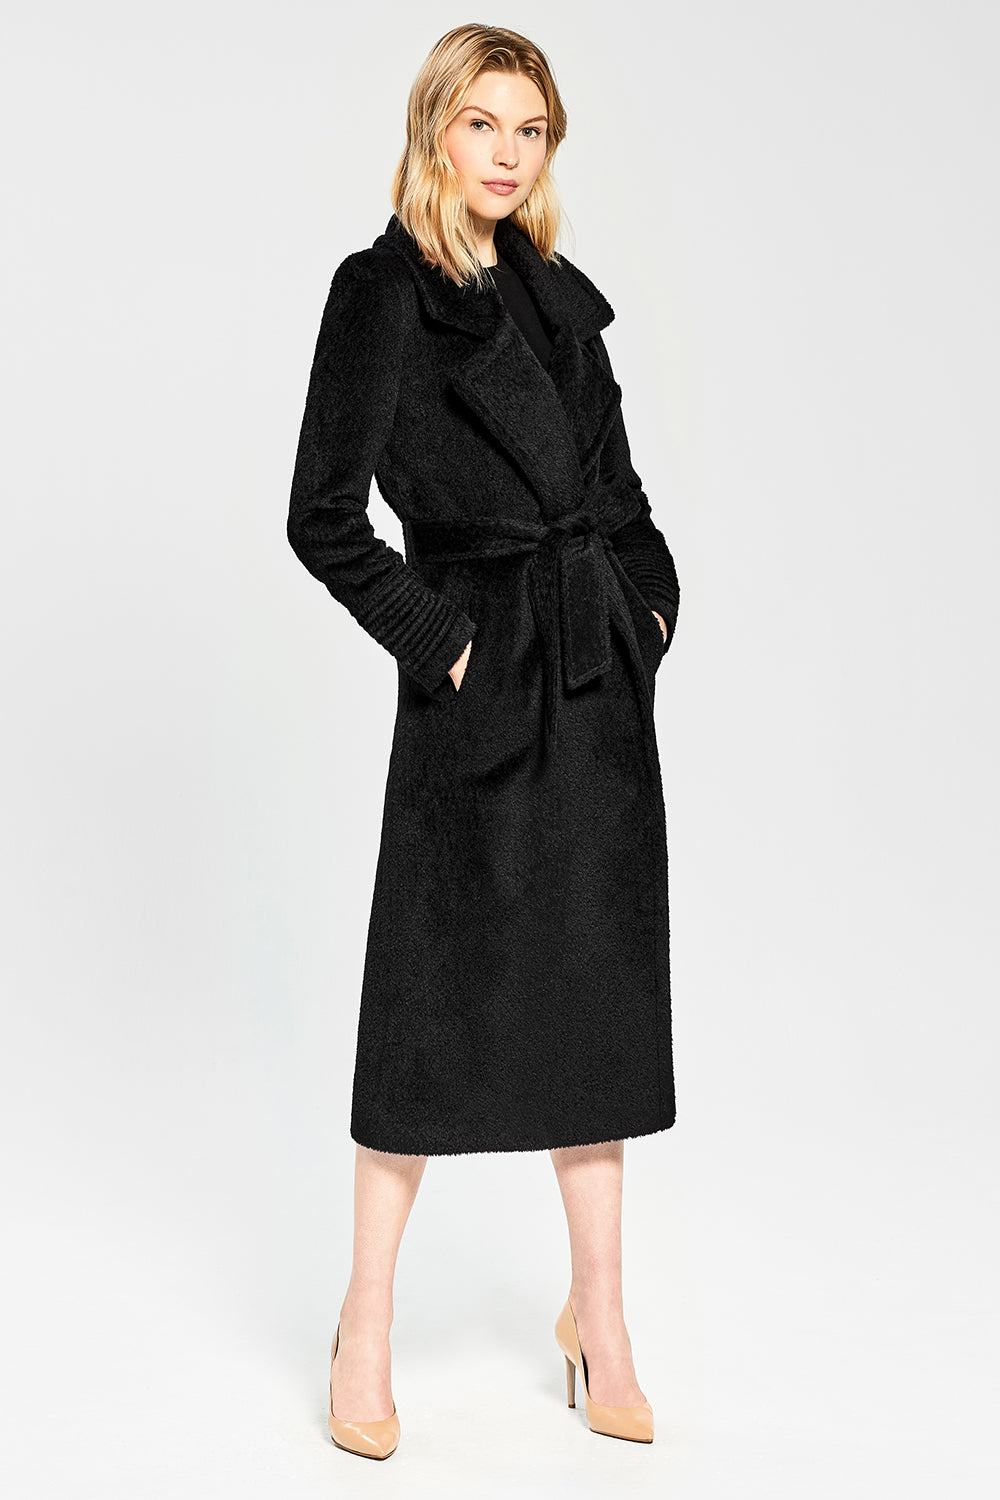 Sentaler Bouclé Alpaca Long Notched Collar Wrap Coat featured in Bouclé Alpaca and available in Black. Seen from side.